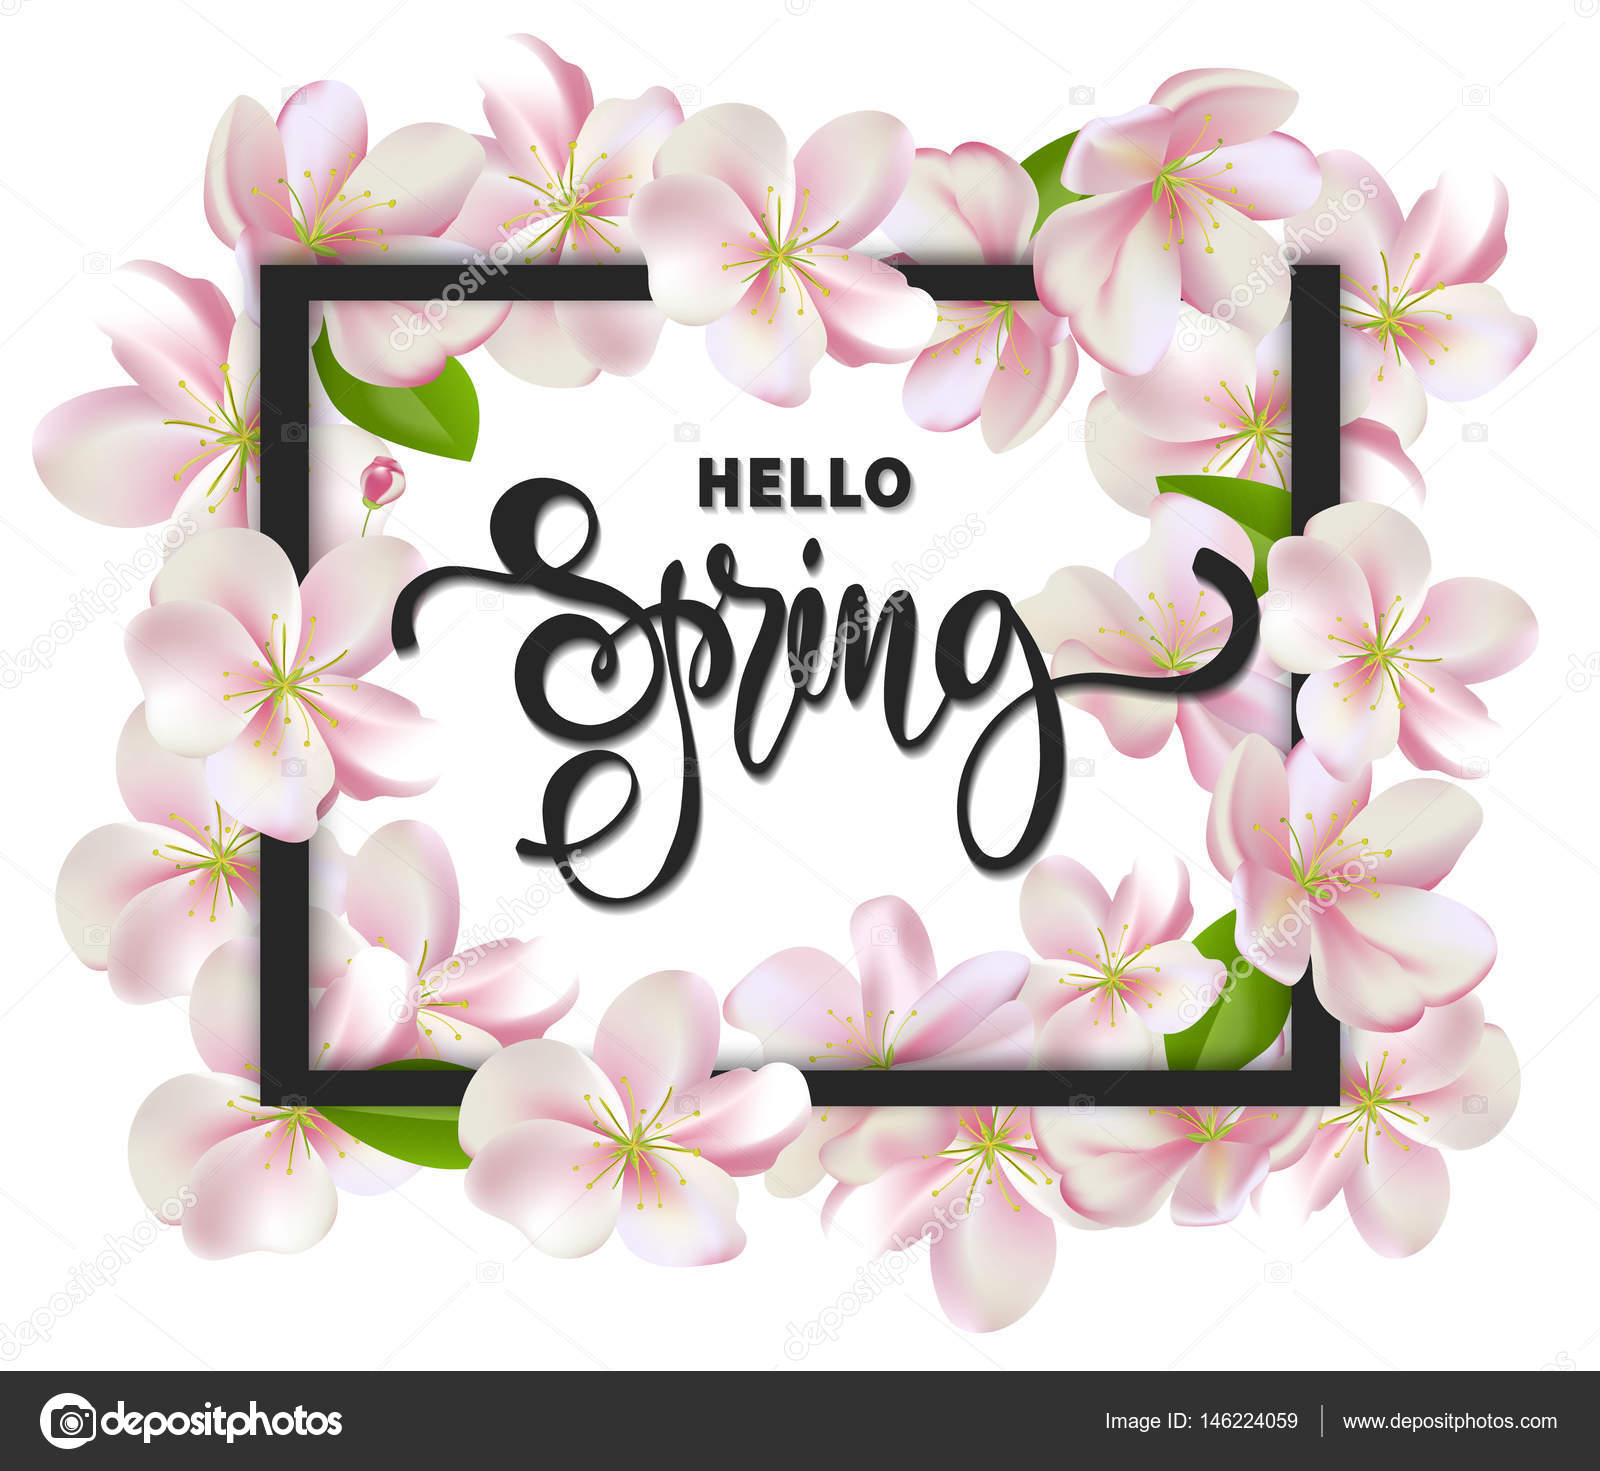 Hello Spring Background With Cherry Blossoms, Leaves And Branches.Greeting  Card With Hand Drawn